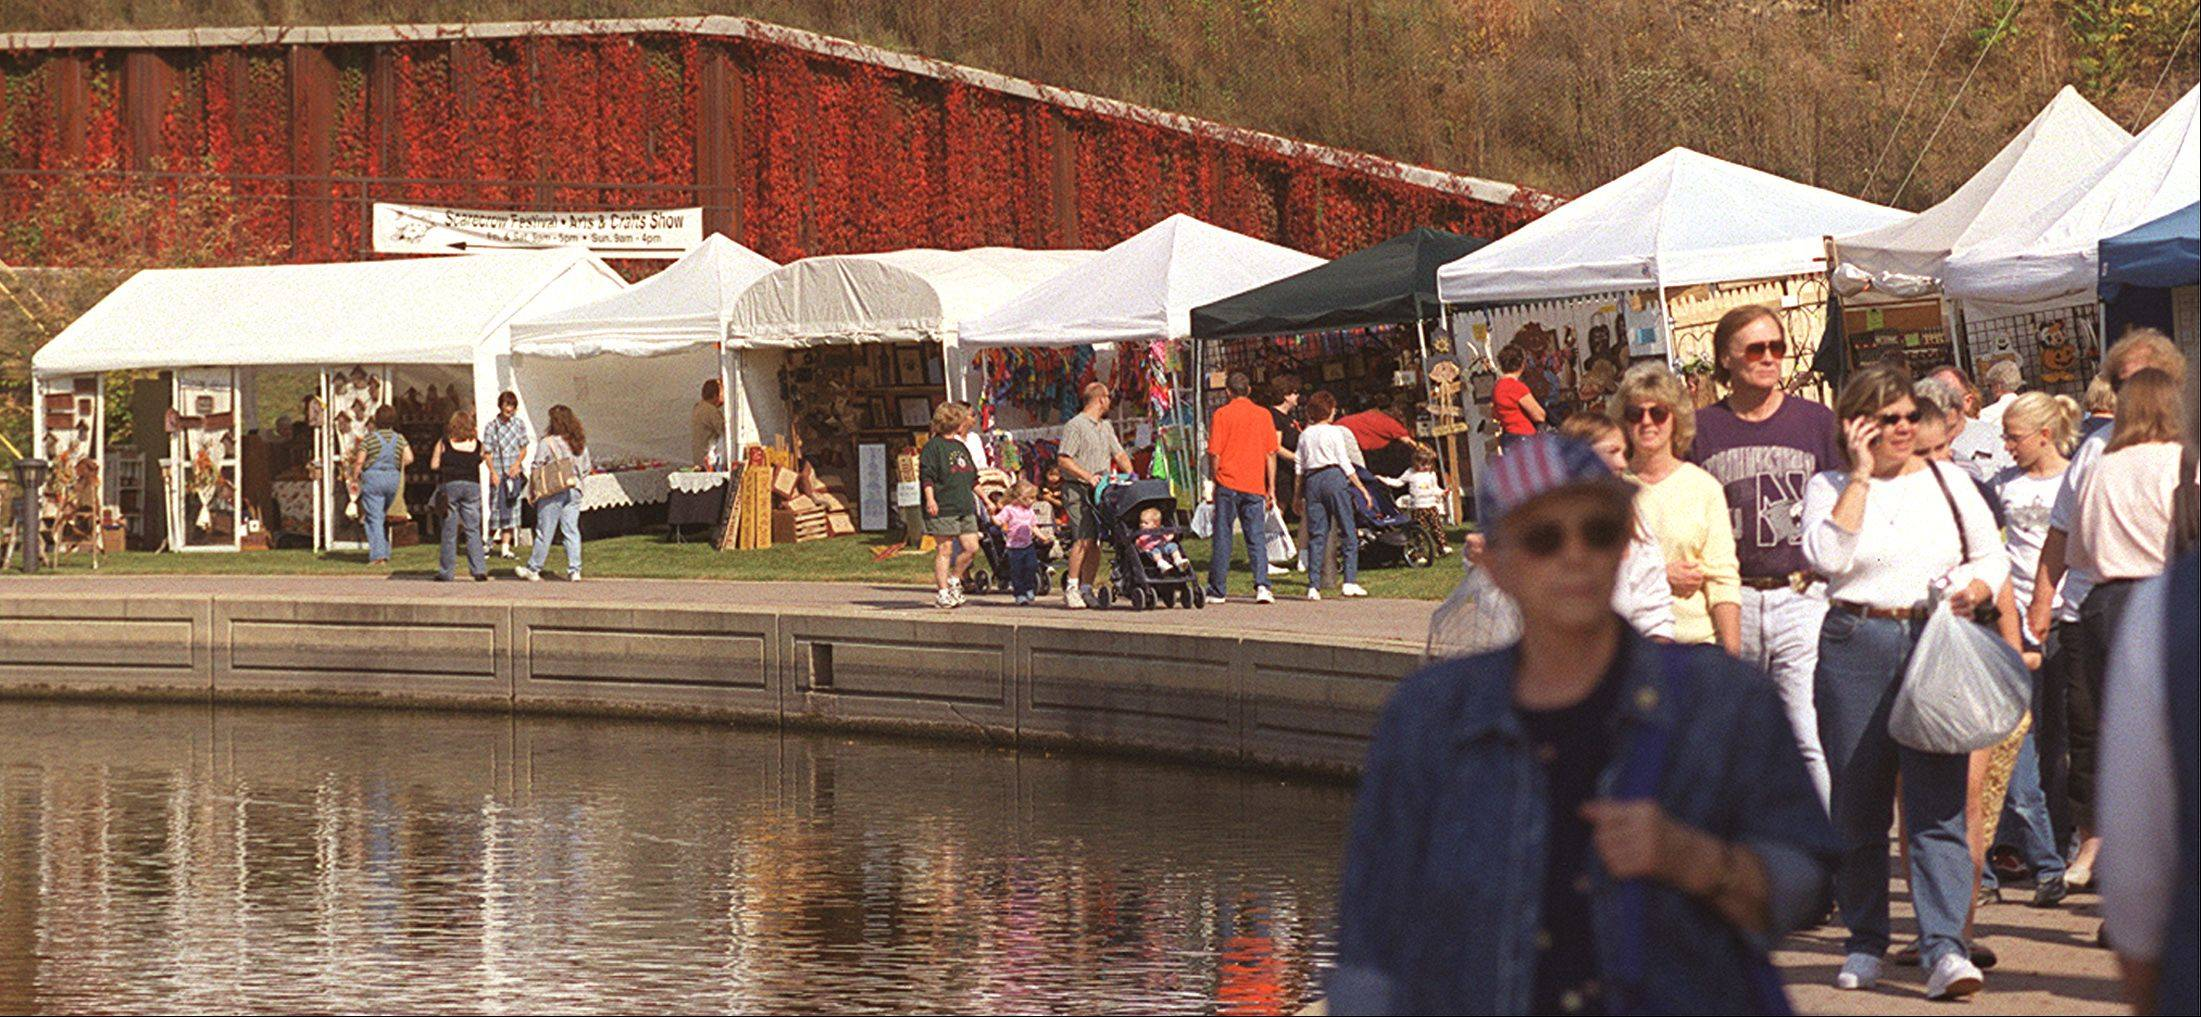 Shoppers pack the riverwalk along the Fox River in St. Charles for a previous Autumn on the Fox Art and Craft Show. This year's show, part of St. Charles Scarecrow Fest, will be held from 9 a.m. to 5 p.m. Friday and Saturday and 9 a.m. to 4 p.m. Sunday in Pottawatomie Park.